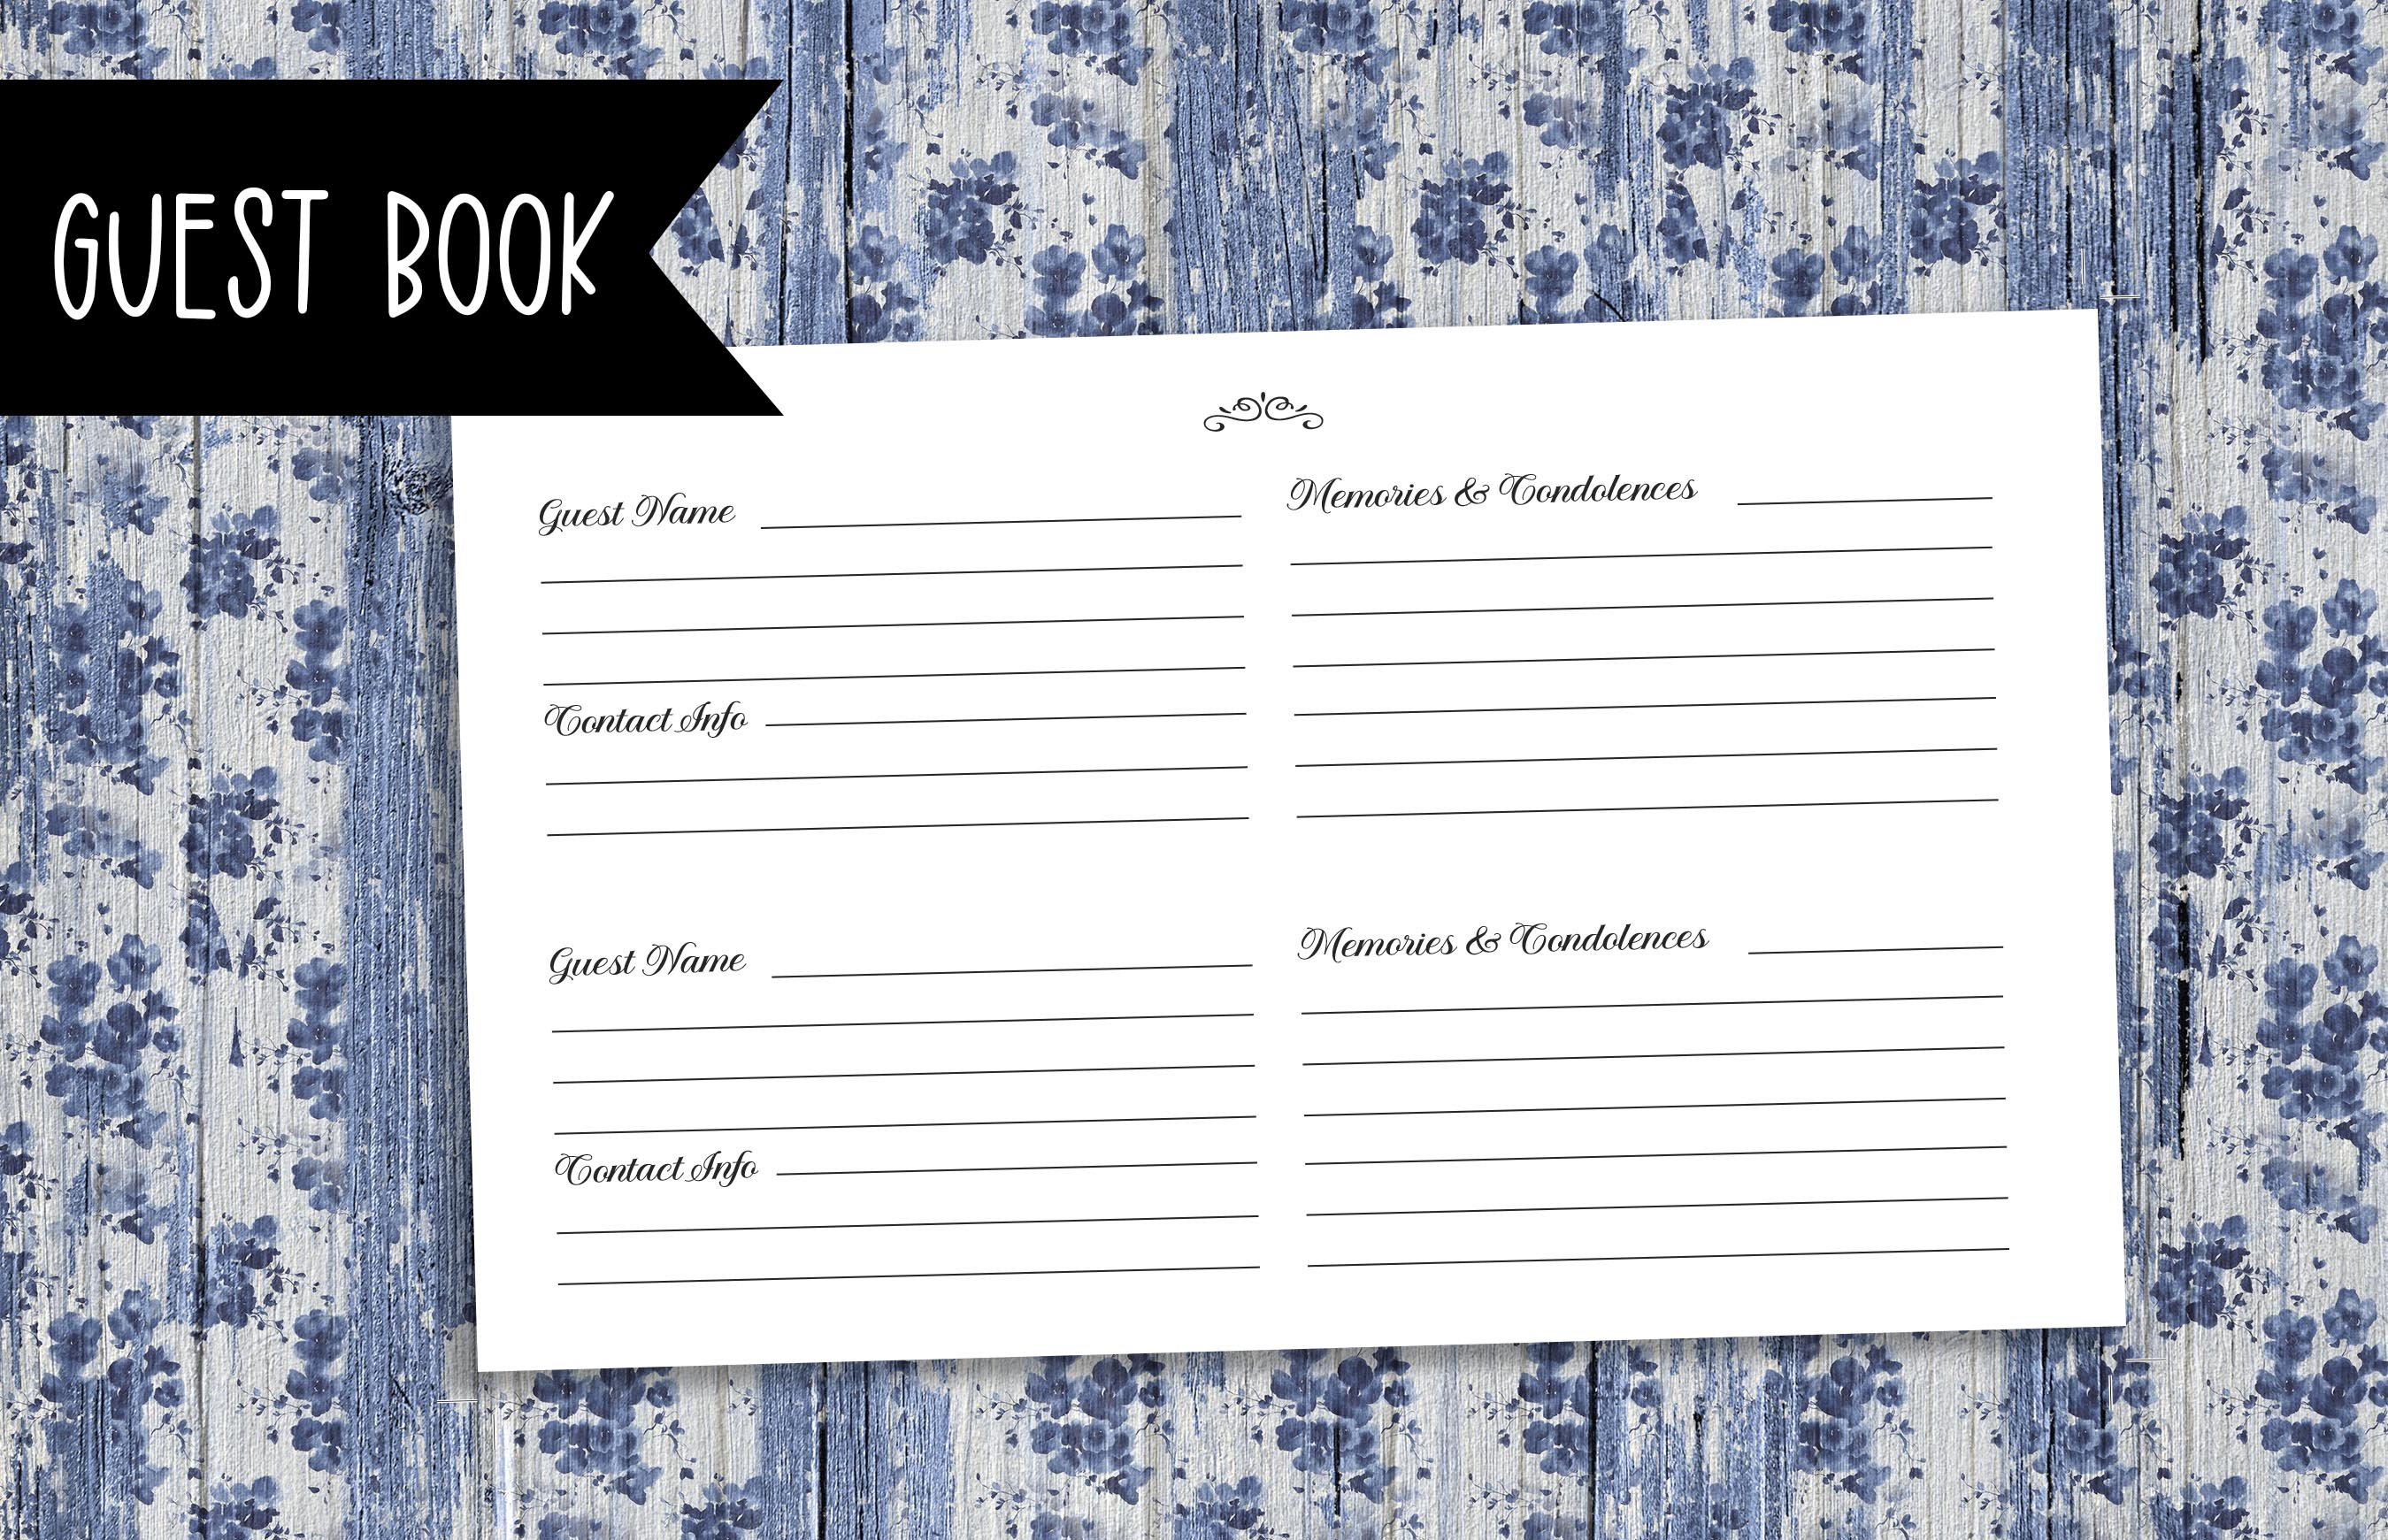 Download Free Funeral Guest Book Kdp Template Graphic By Planfantastic for Cricut Explore, Silhouette and other cutting machines.